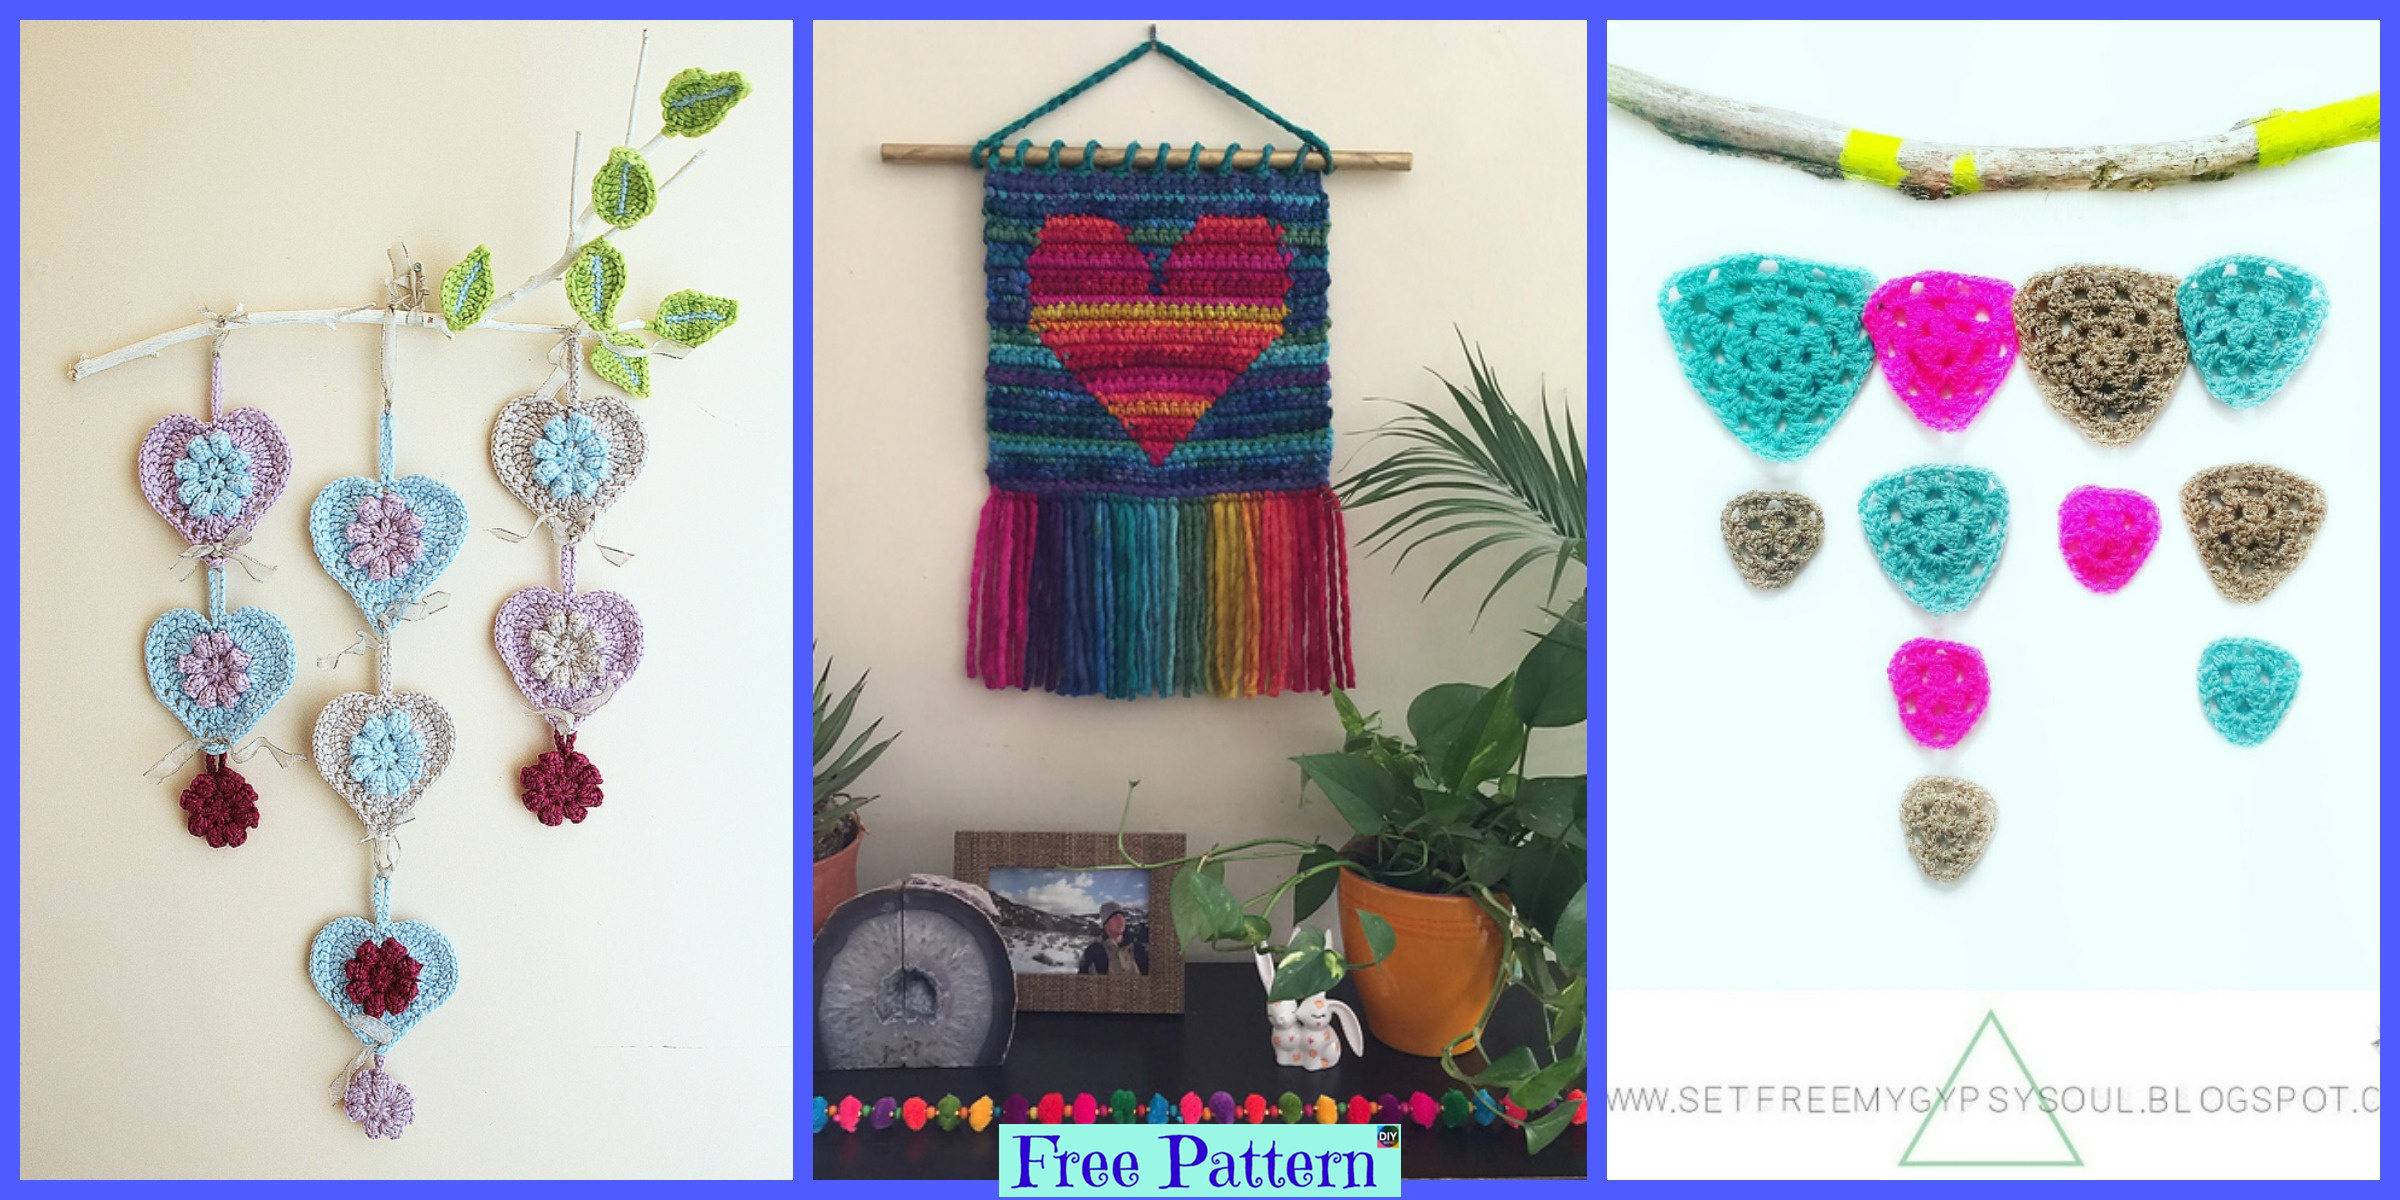 Crochet Heart Wall Hanging – Free Patterns